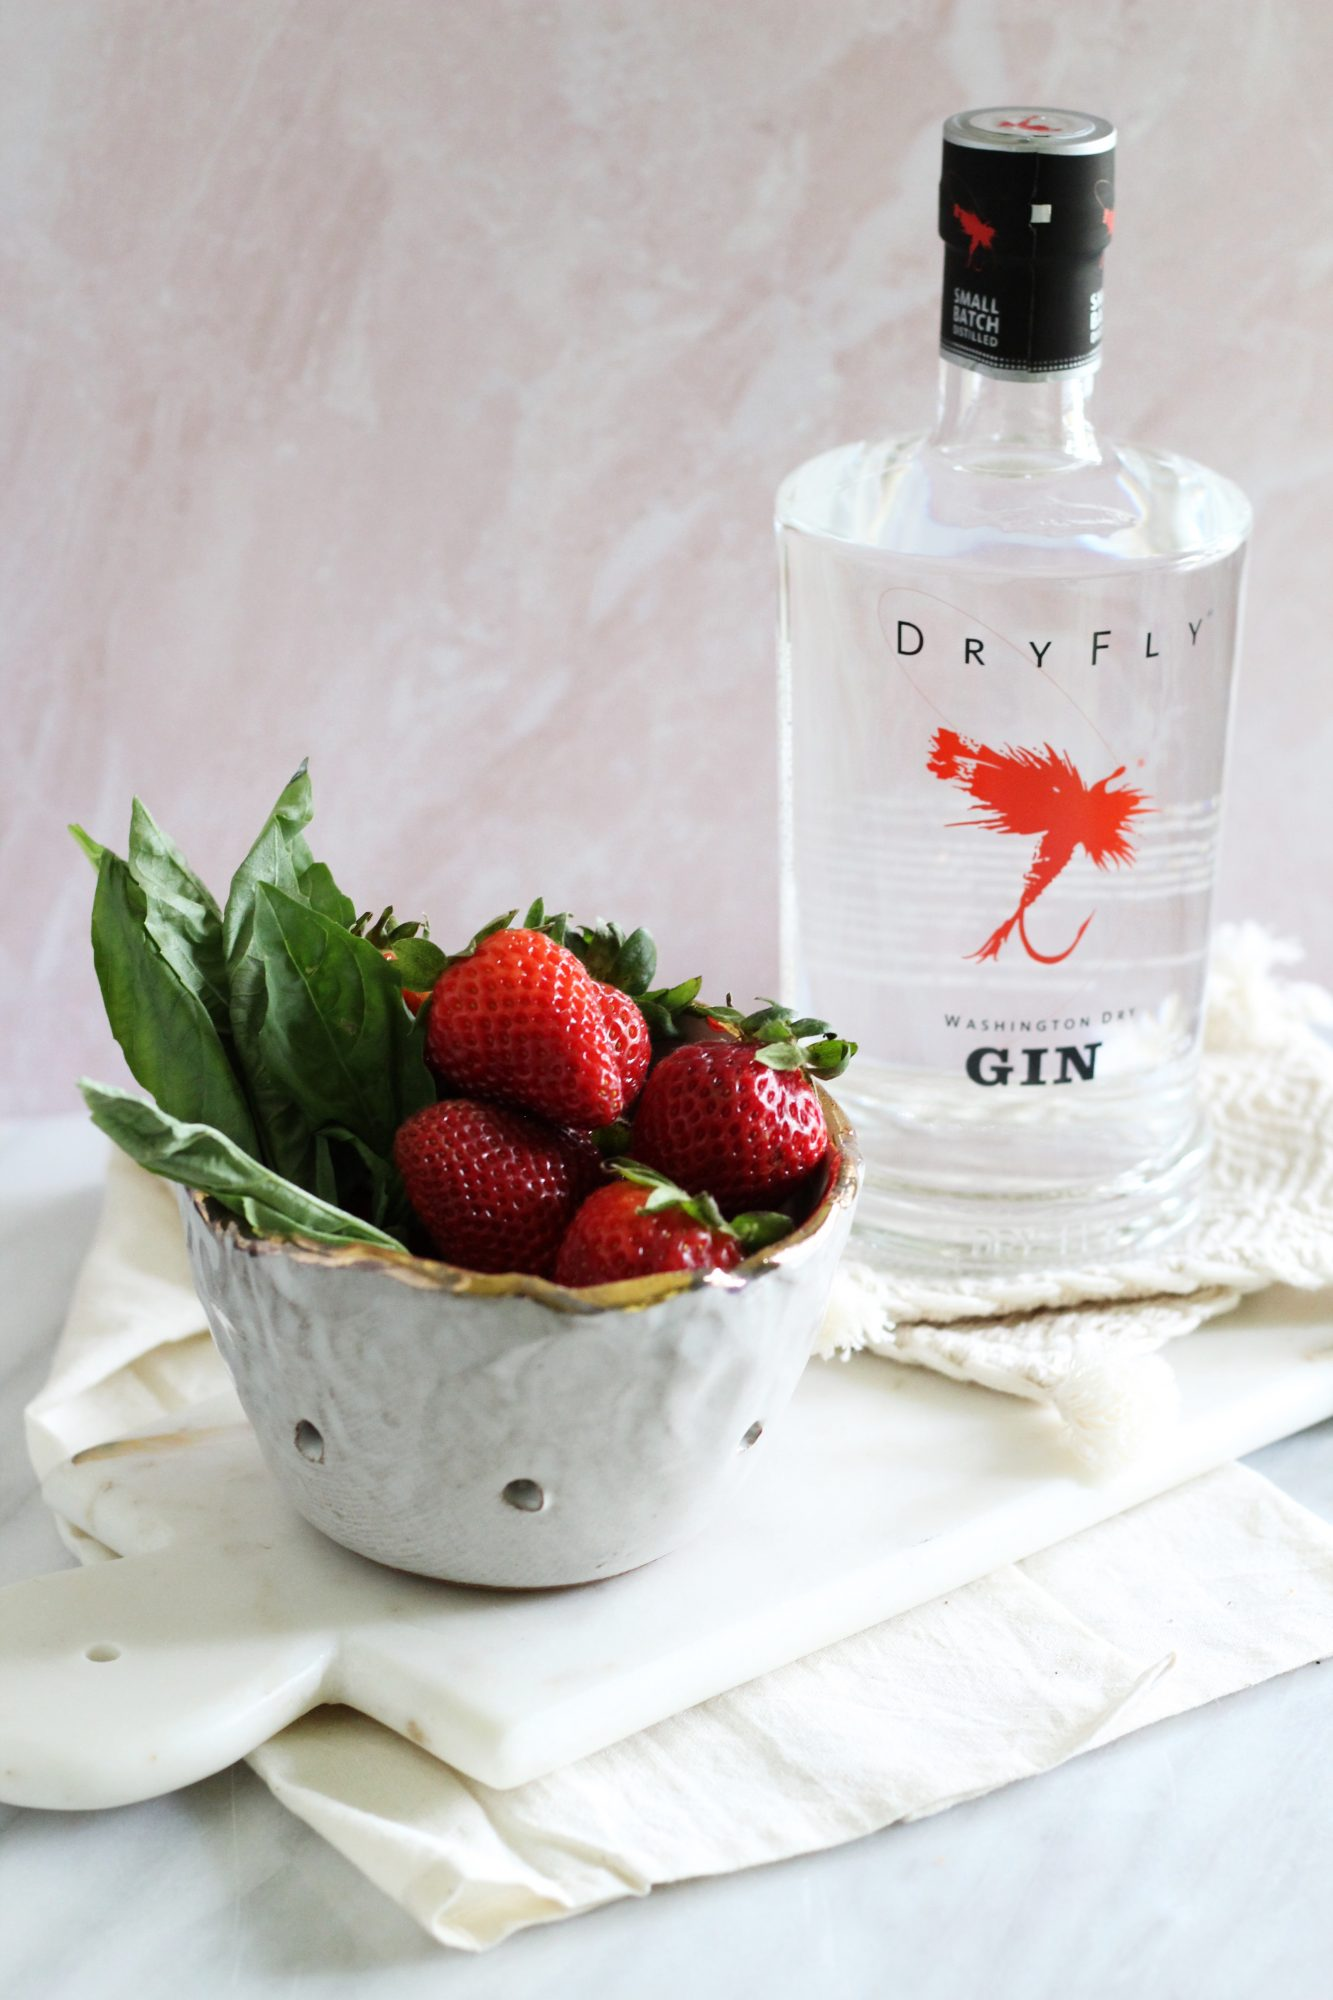 Dry Fly Distilling gin makes for excellent cocktails like a gin basil smash